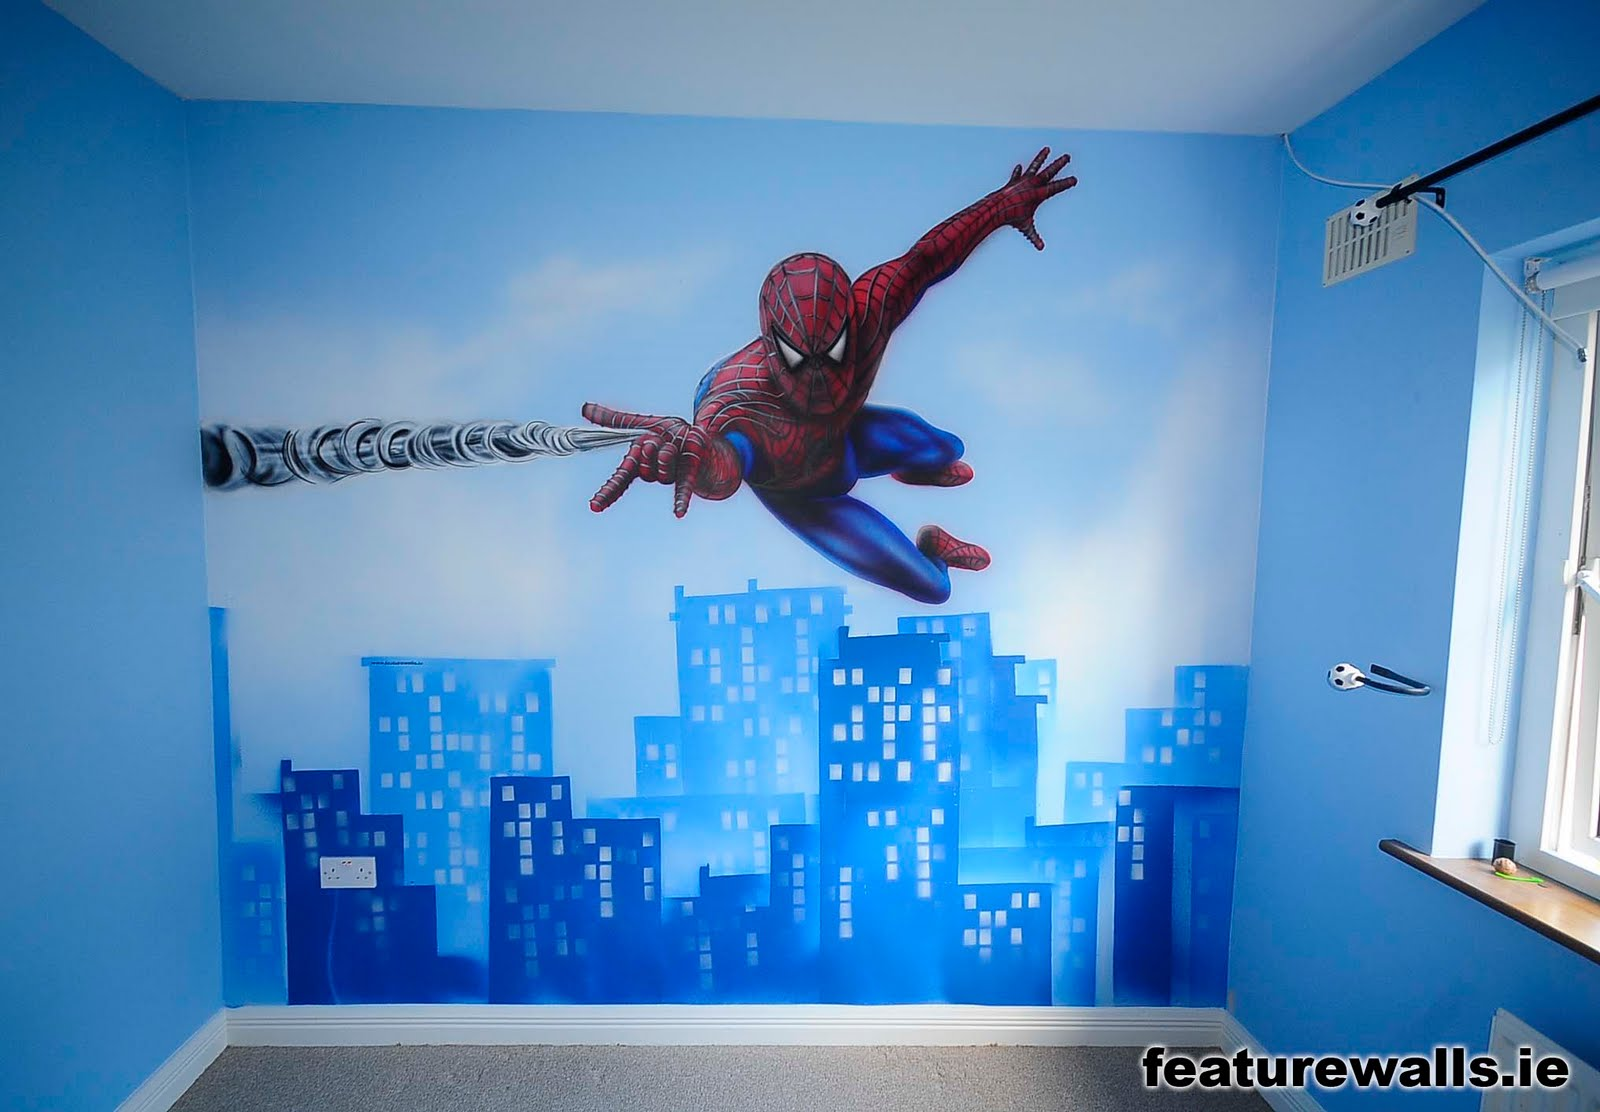 Kids bedroom painting ideas wallpress 1080p hd desktop for Best paint for a wall mural